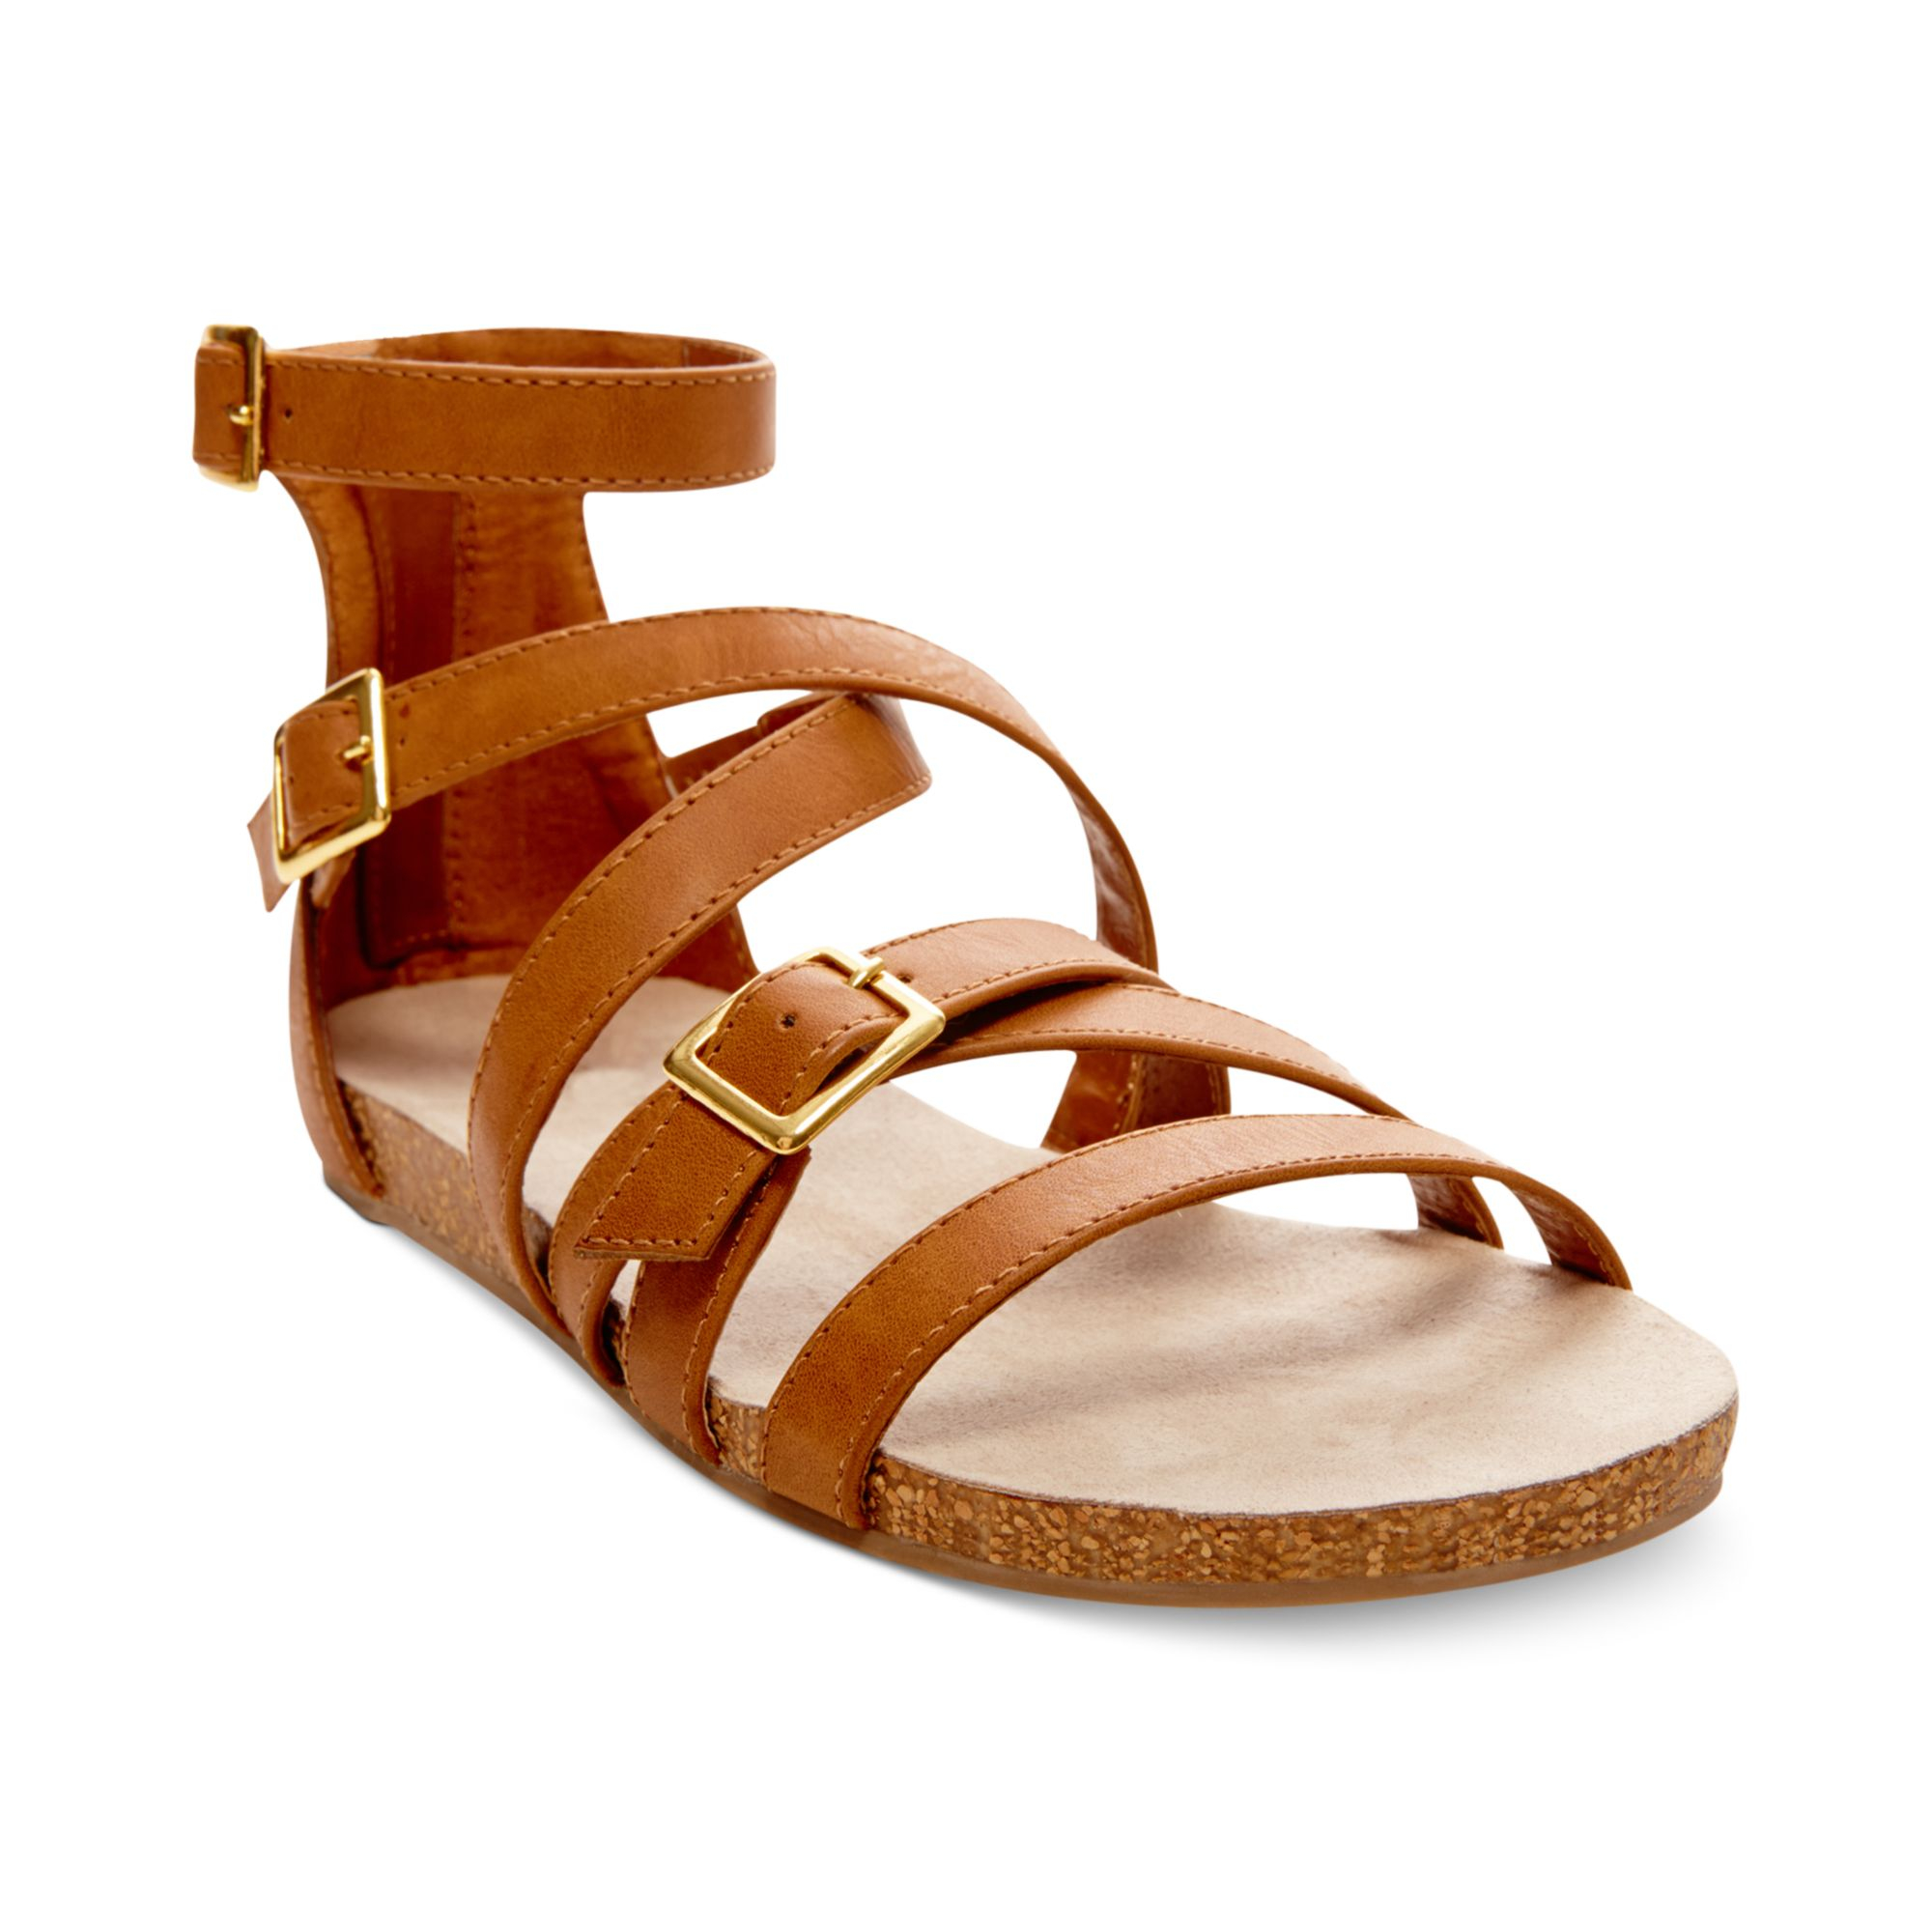 c9e8fc2dd0c2 All about Madden Nyc Breckk Womens Footbed Sandals - kidskunst.info